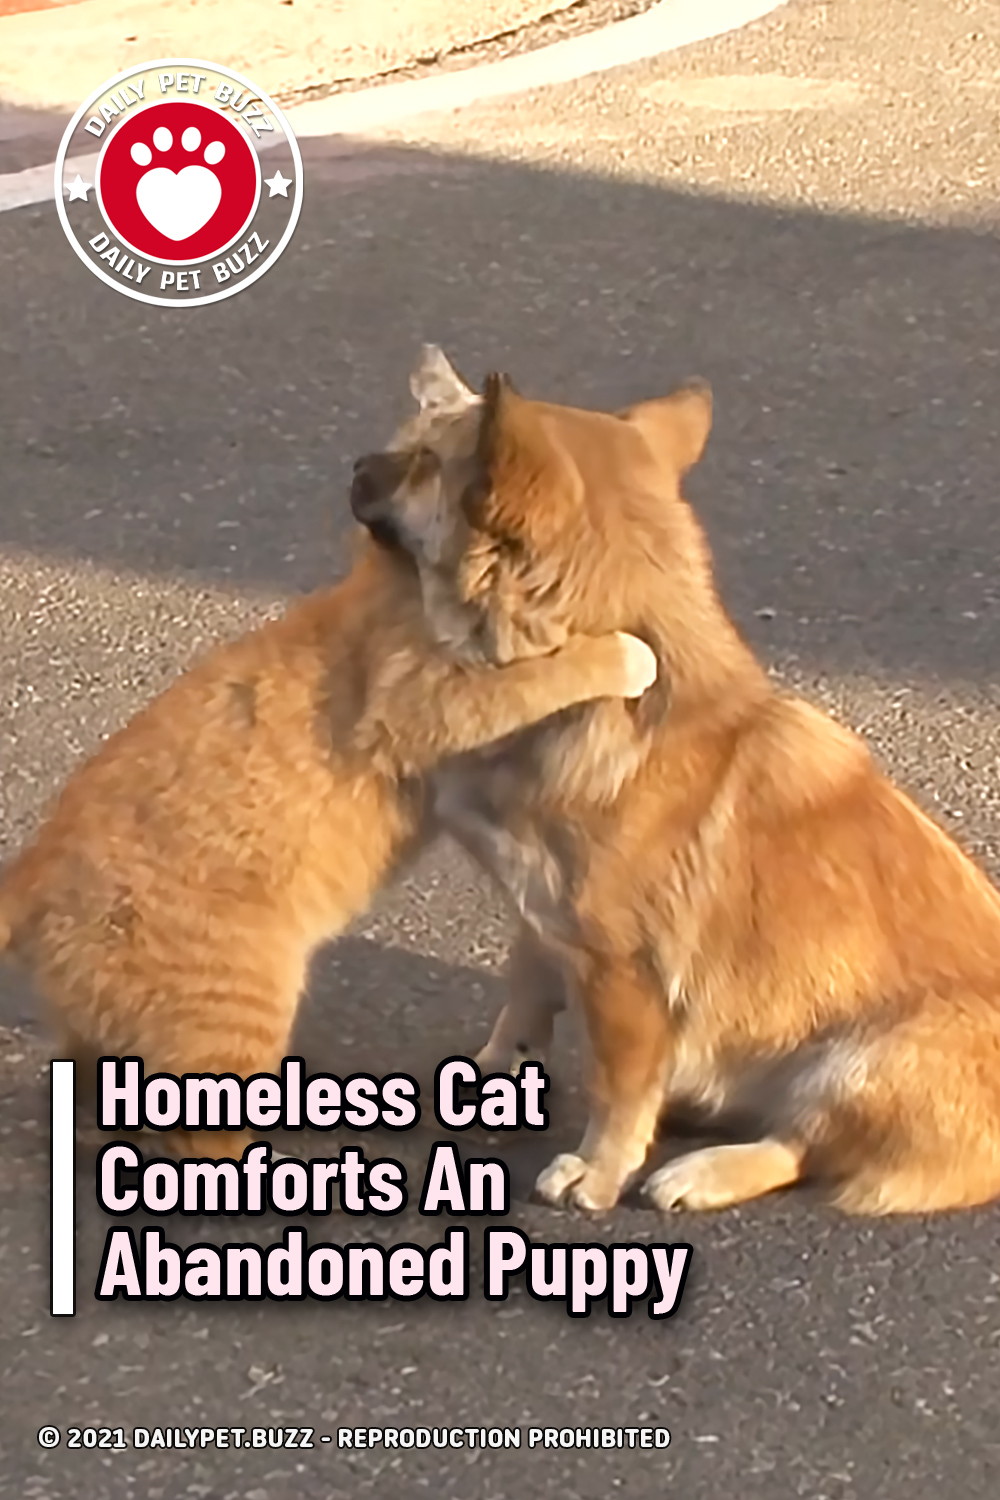 Homeless Cat Comforts An Abandoned Puppy